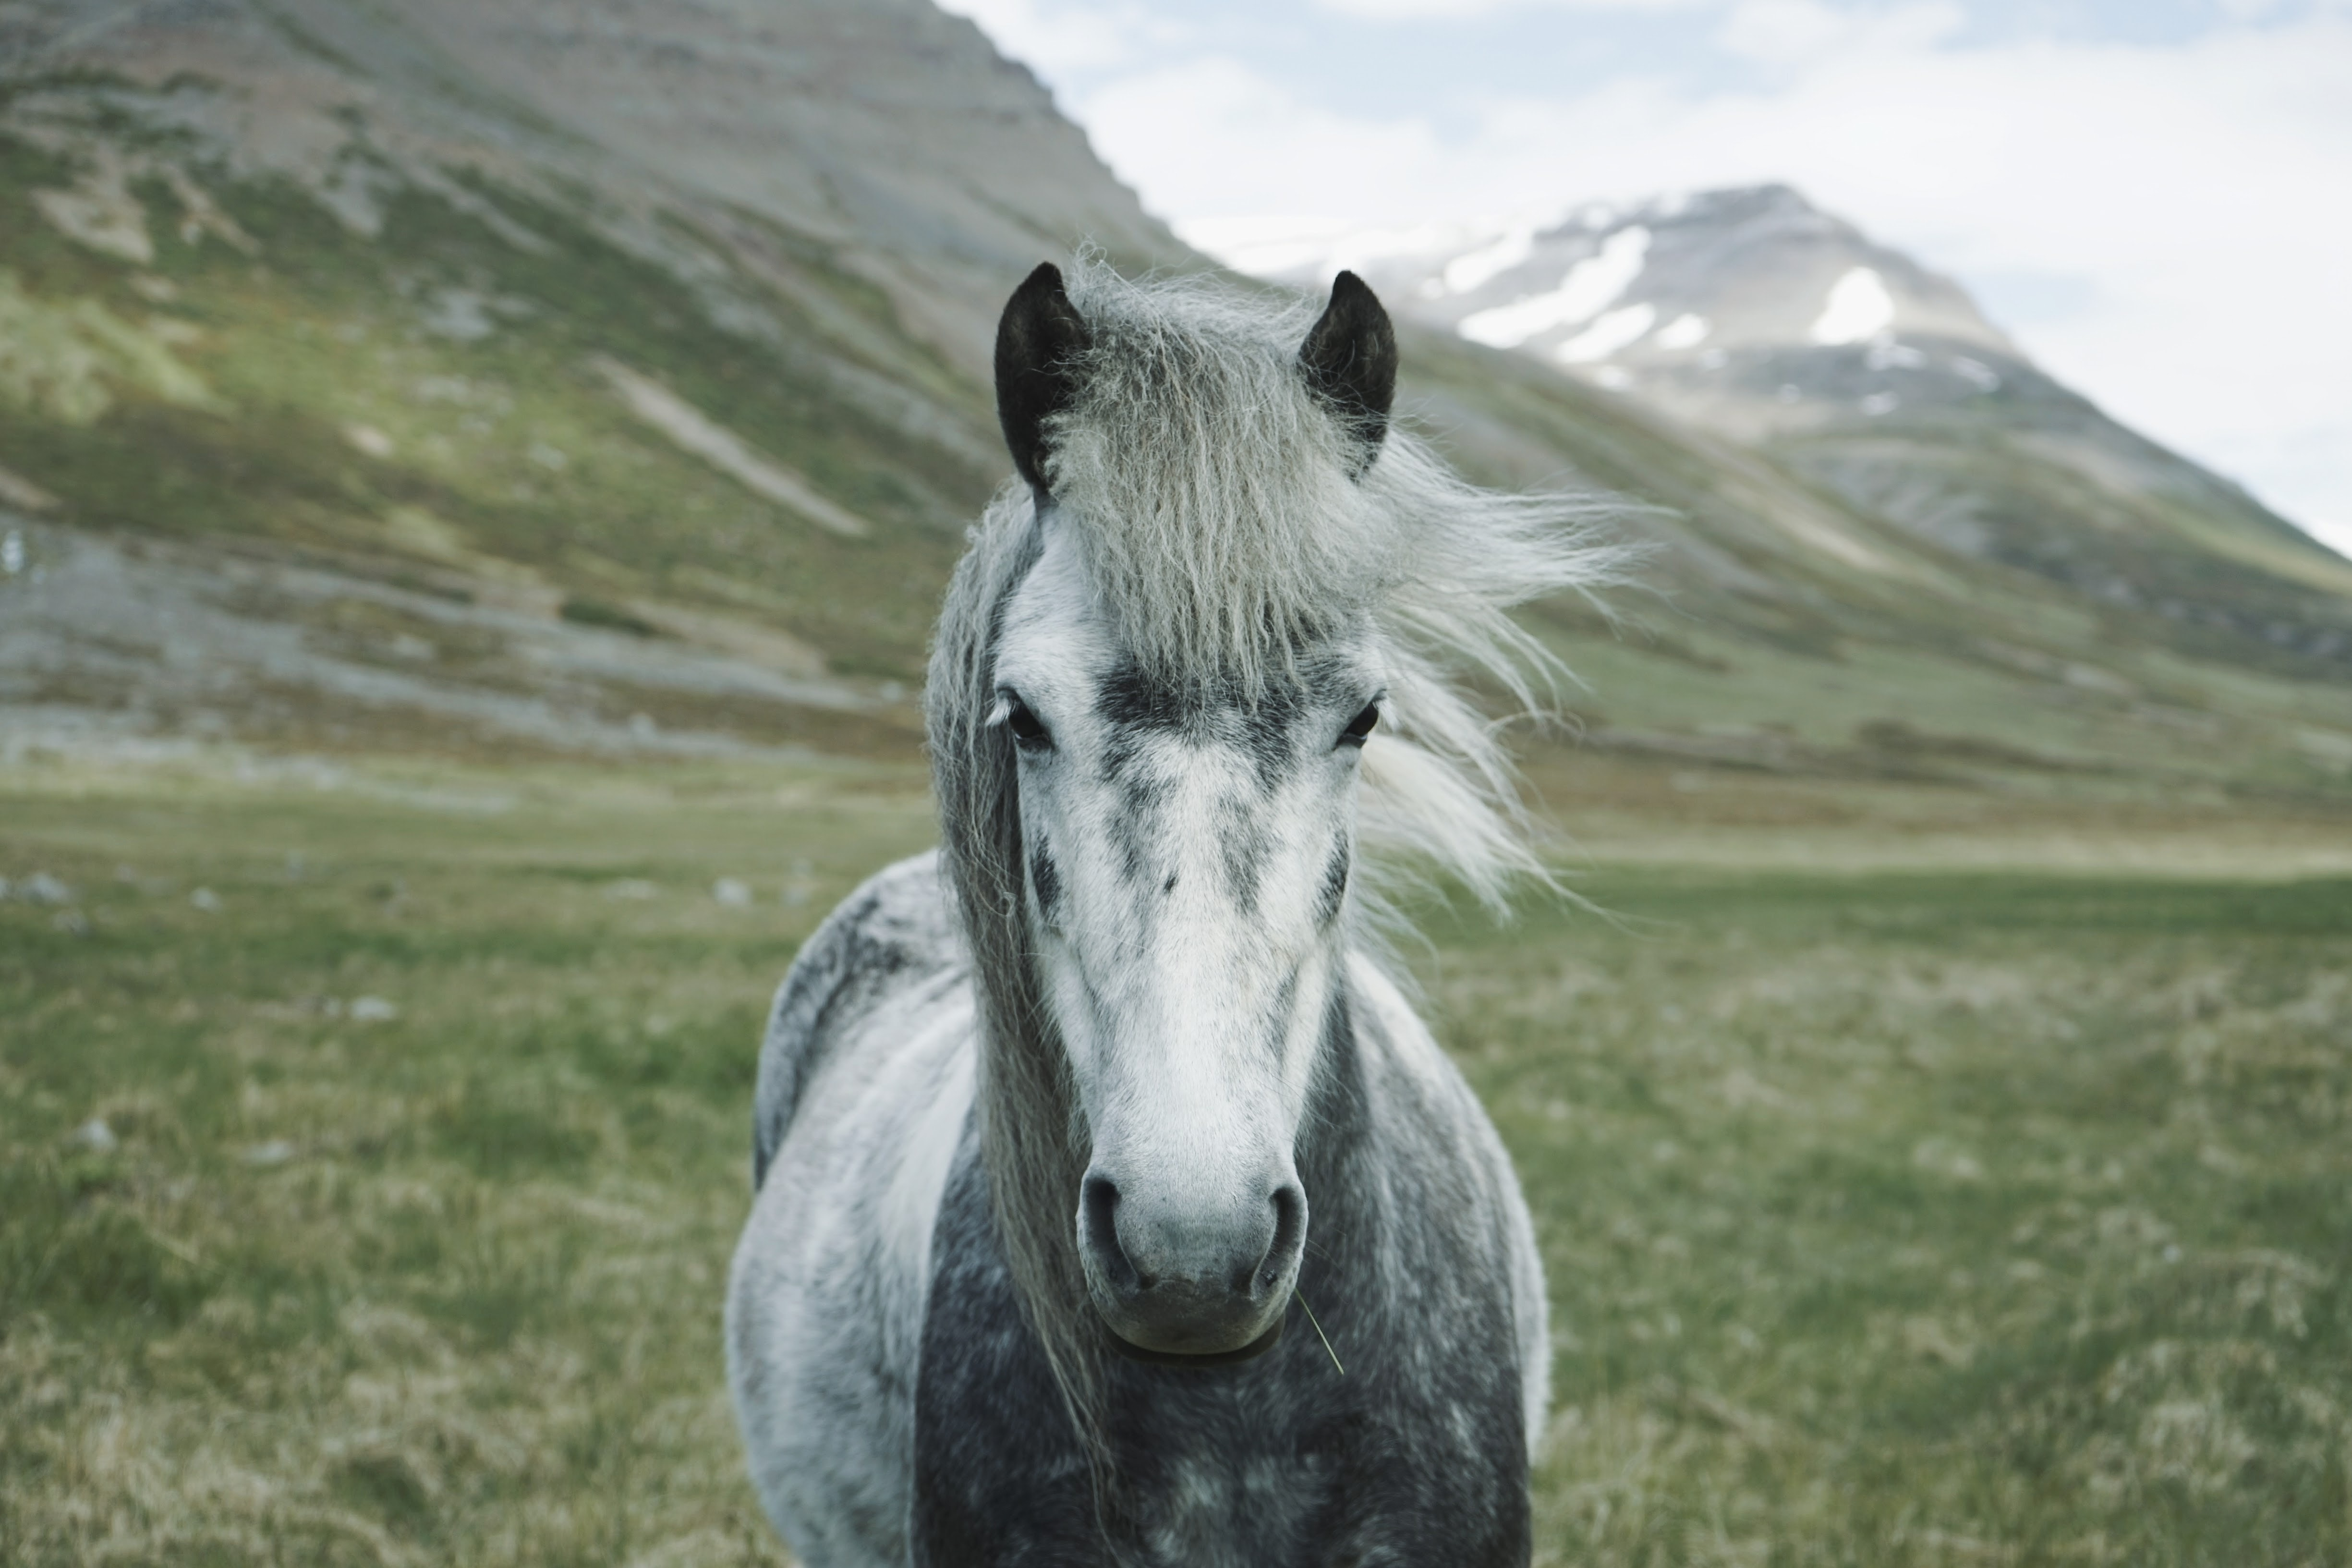 A front shot of a gray horse on a green field at the foot of snowy mountains